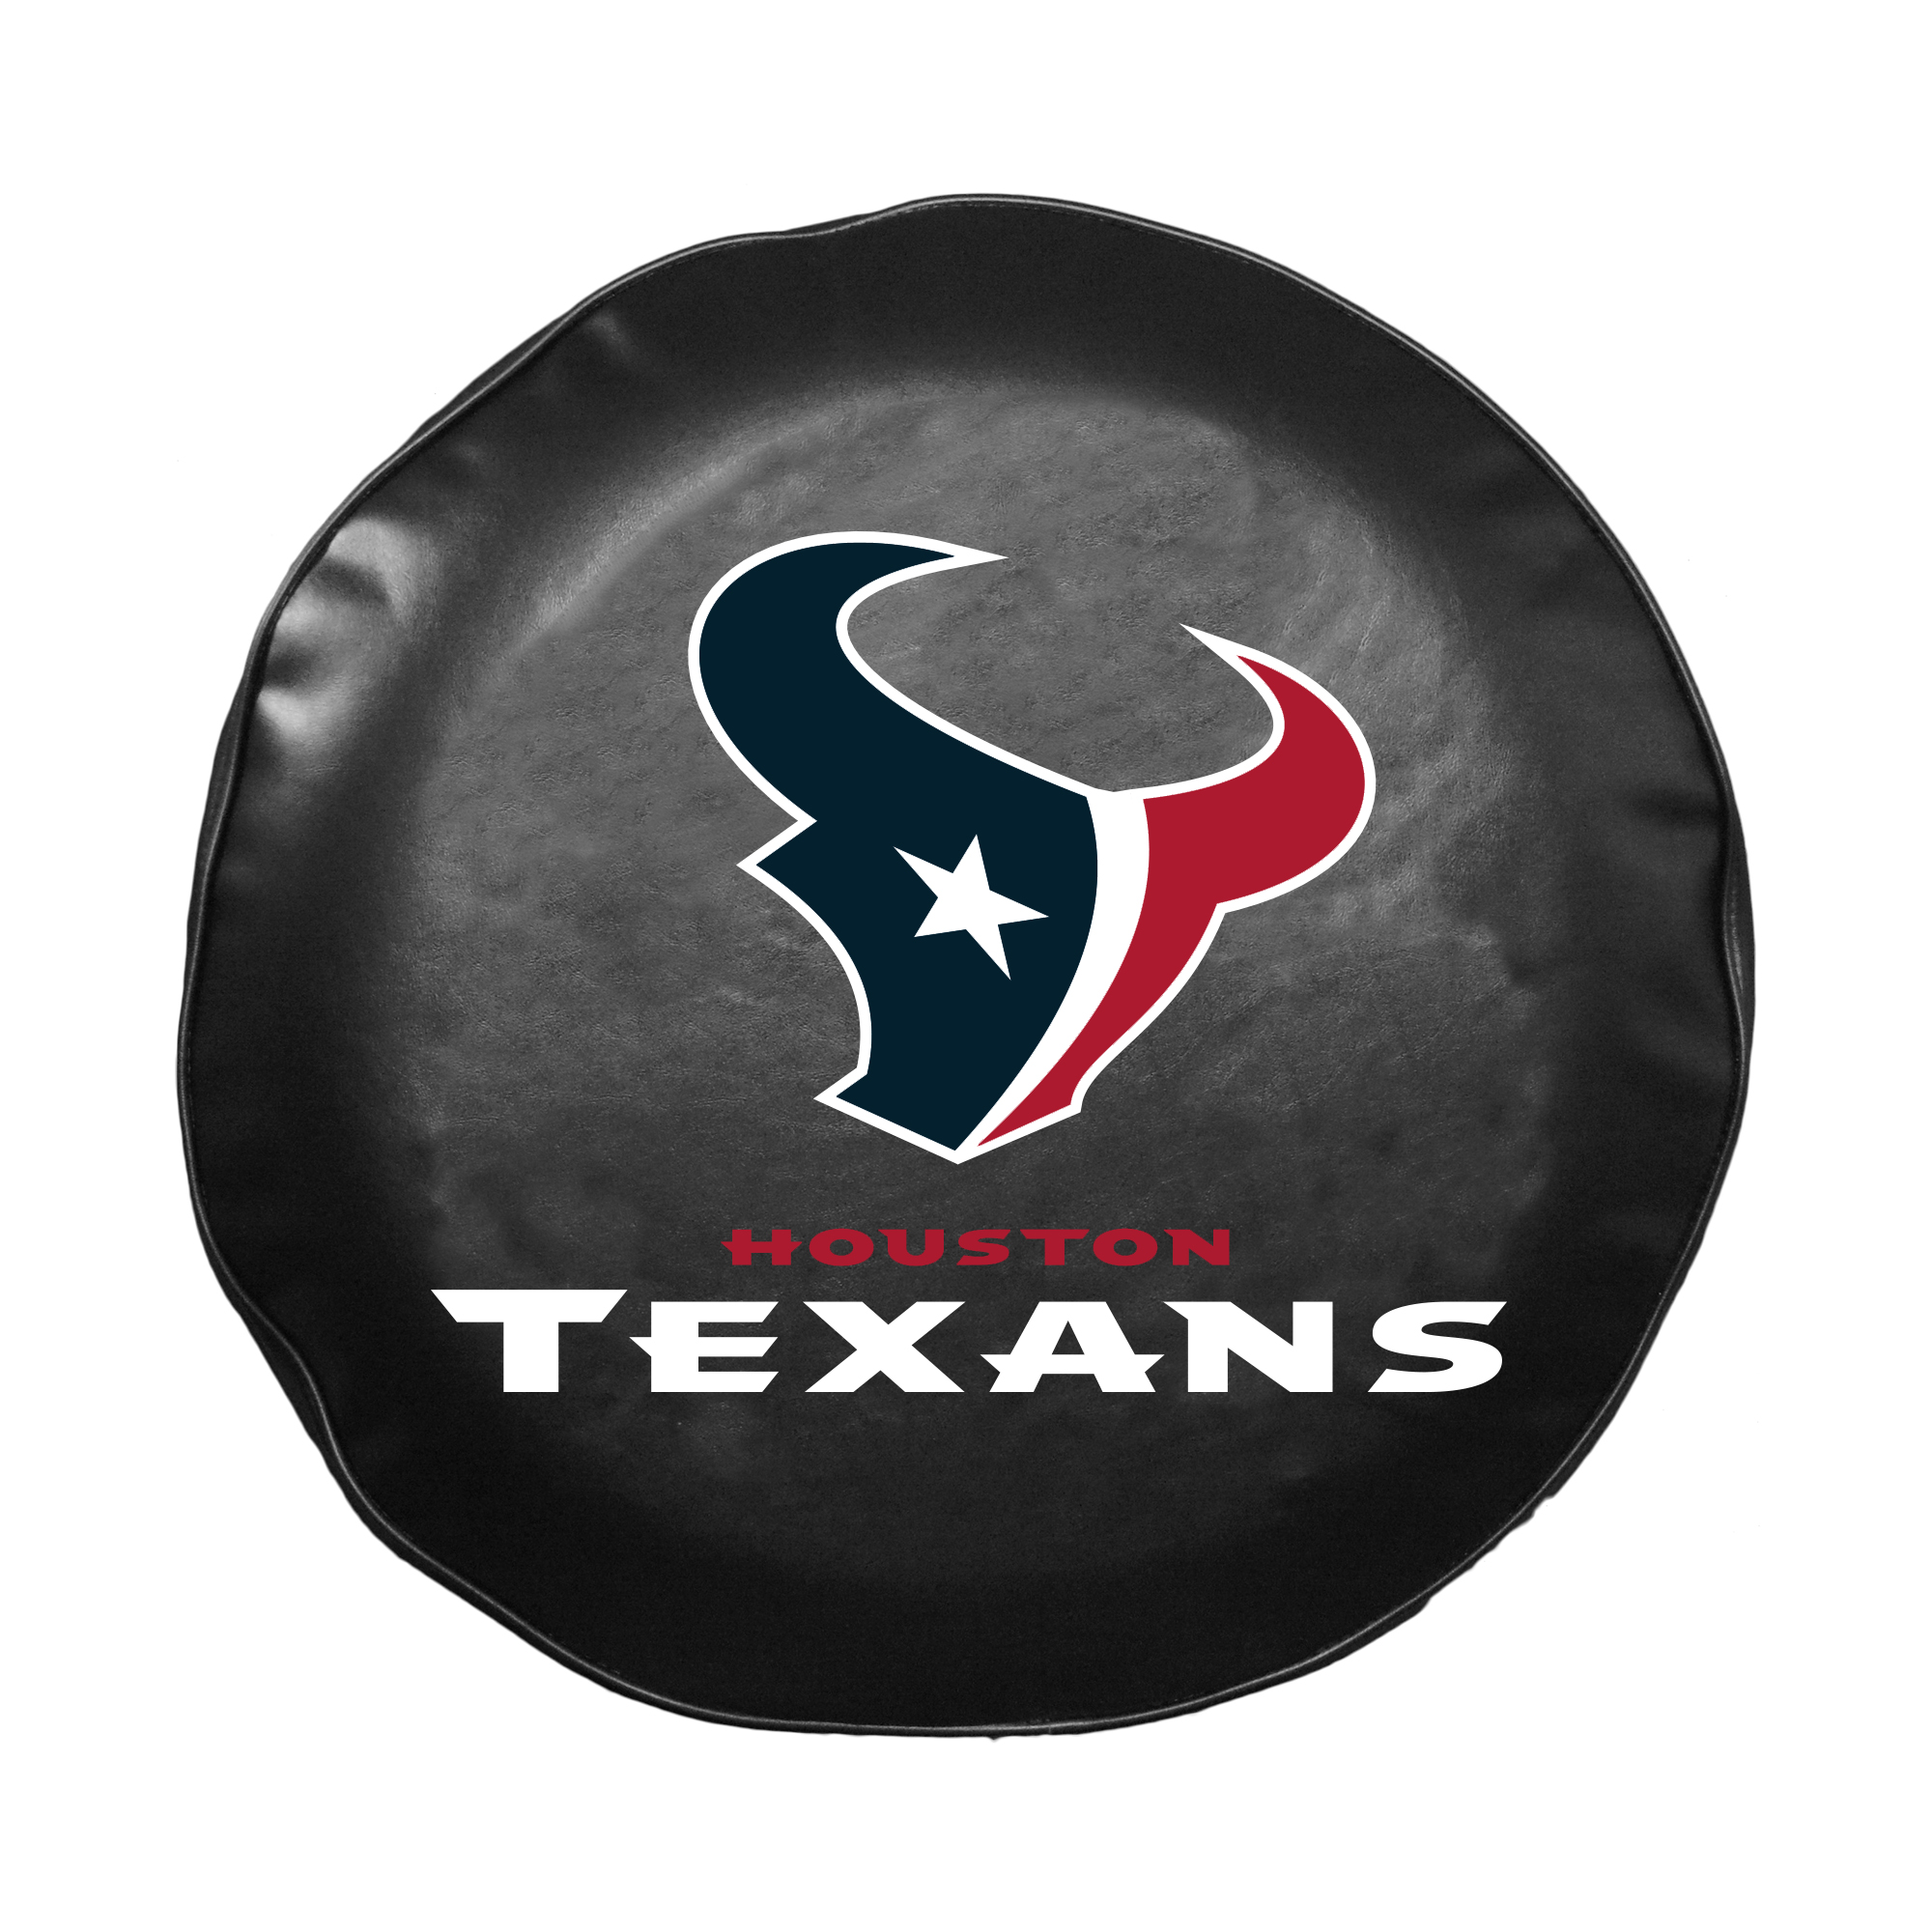 TEXANS Std Tire Cover